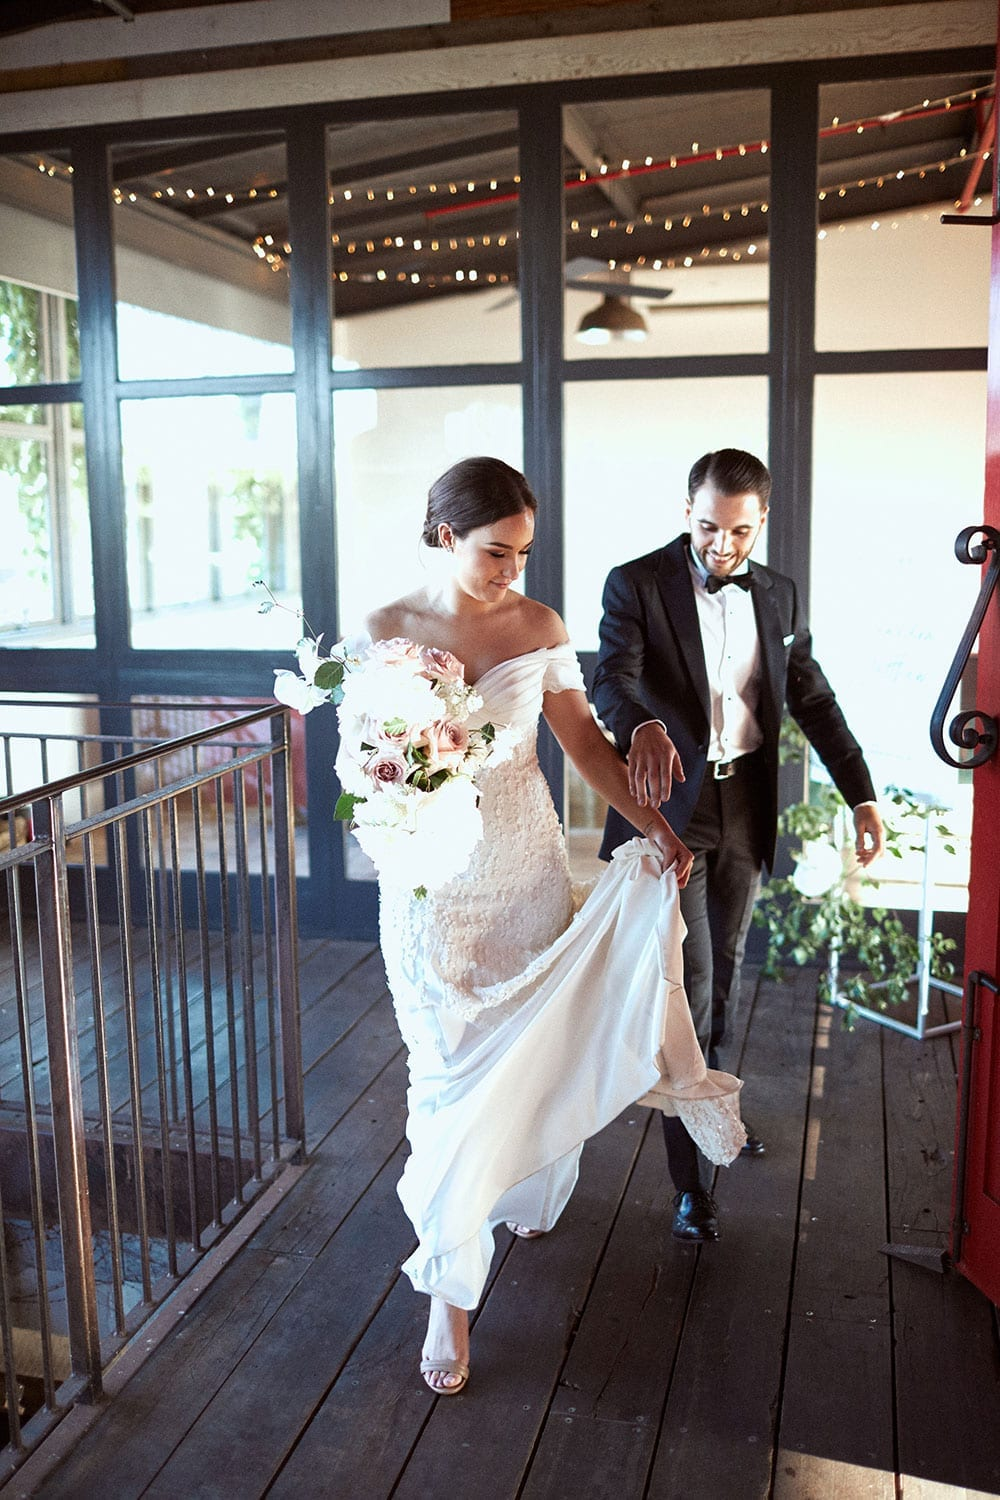 Vinka Design Features Real Weddings - bride in custom made gown with stunning silhouette and lace. Bride and groom enter reception